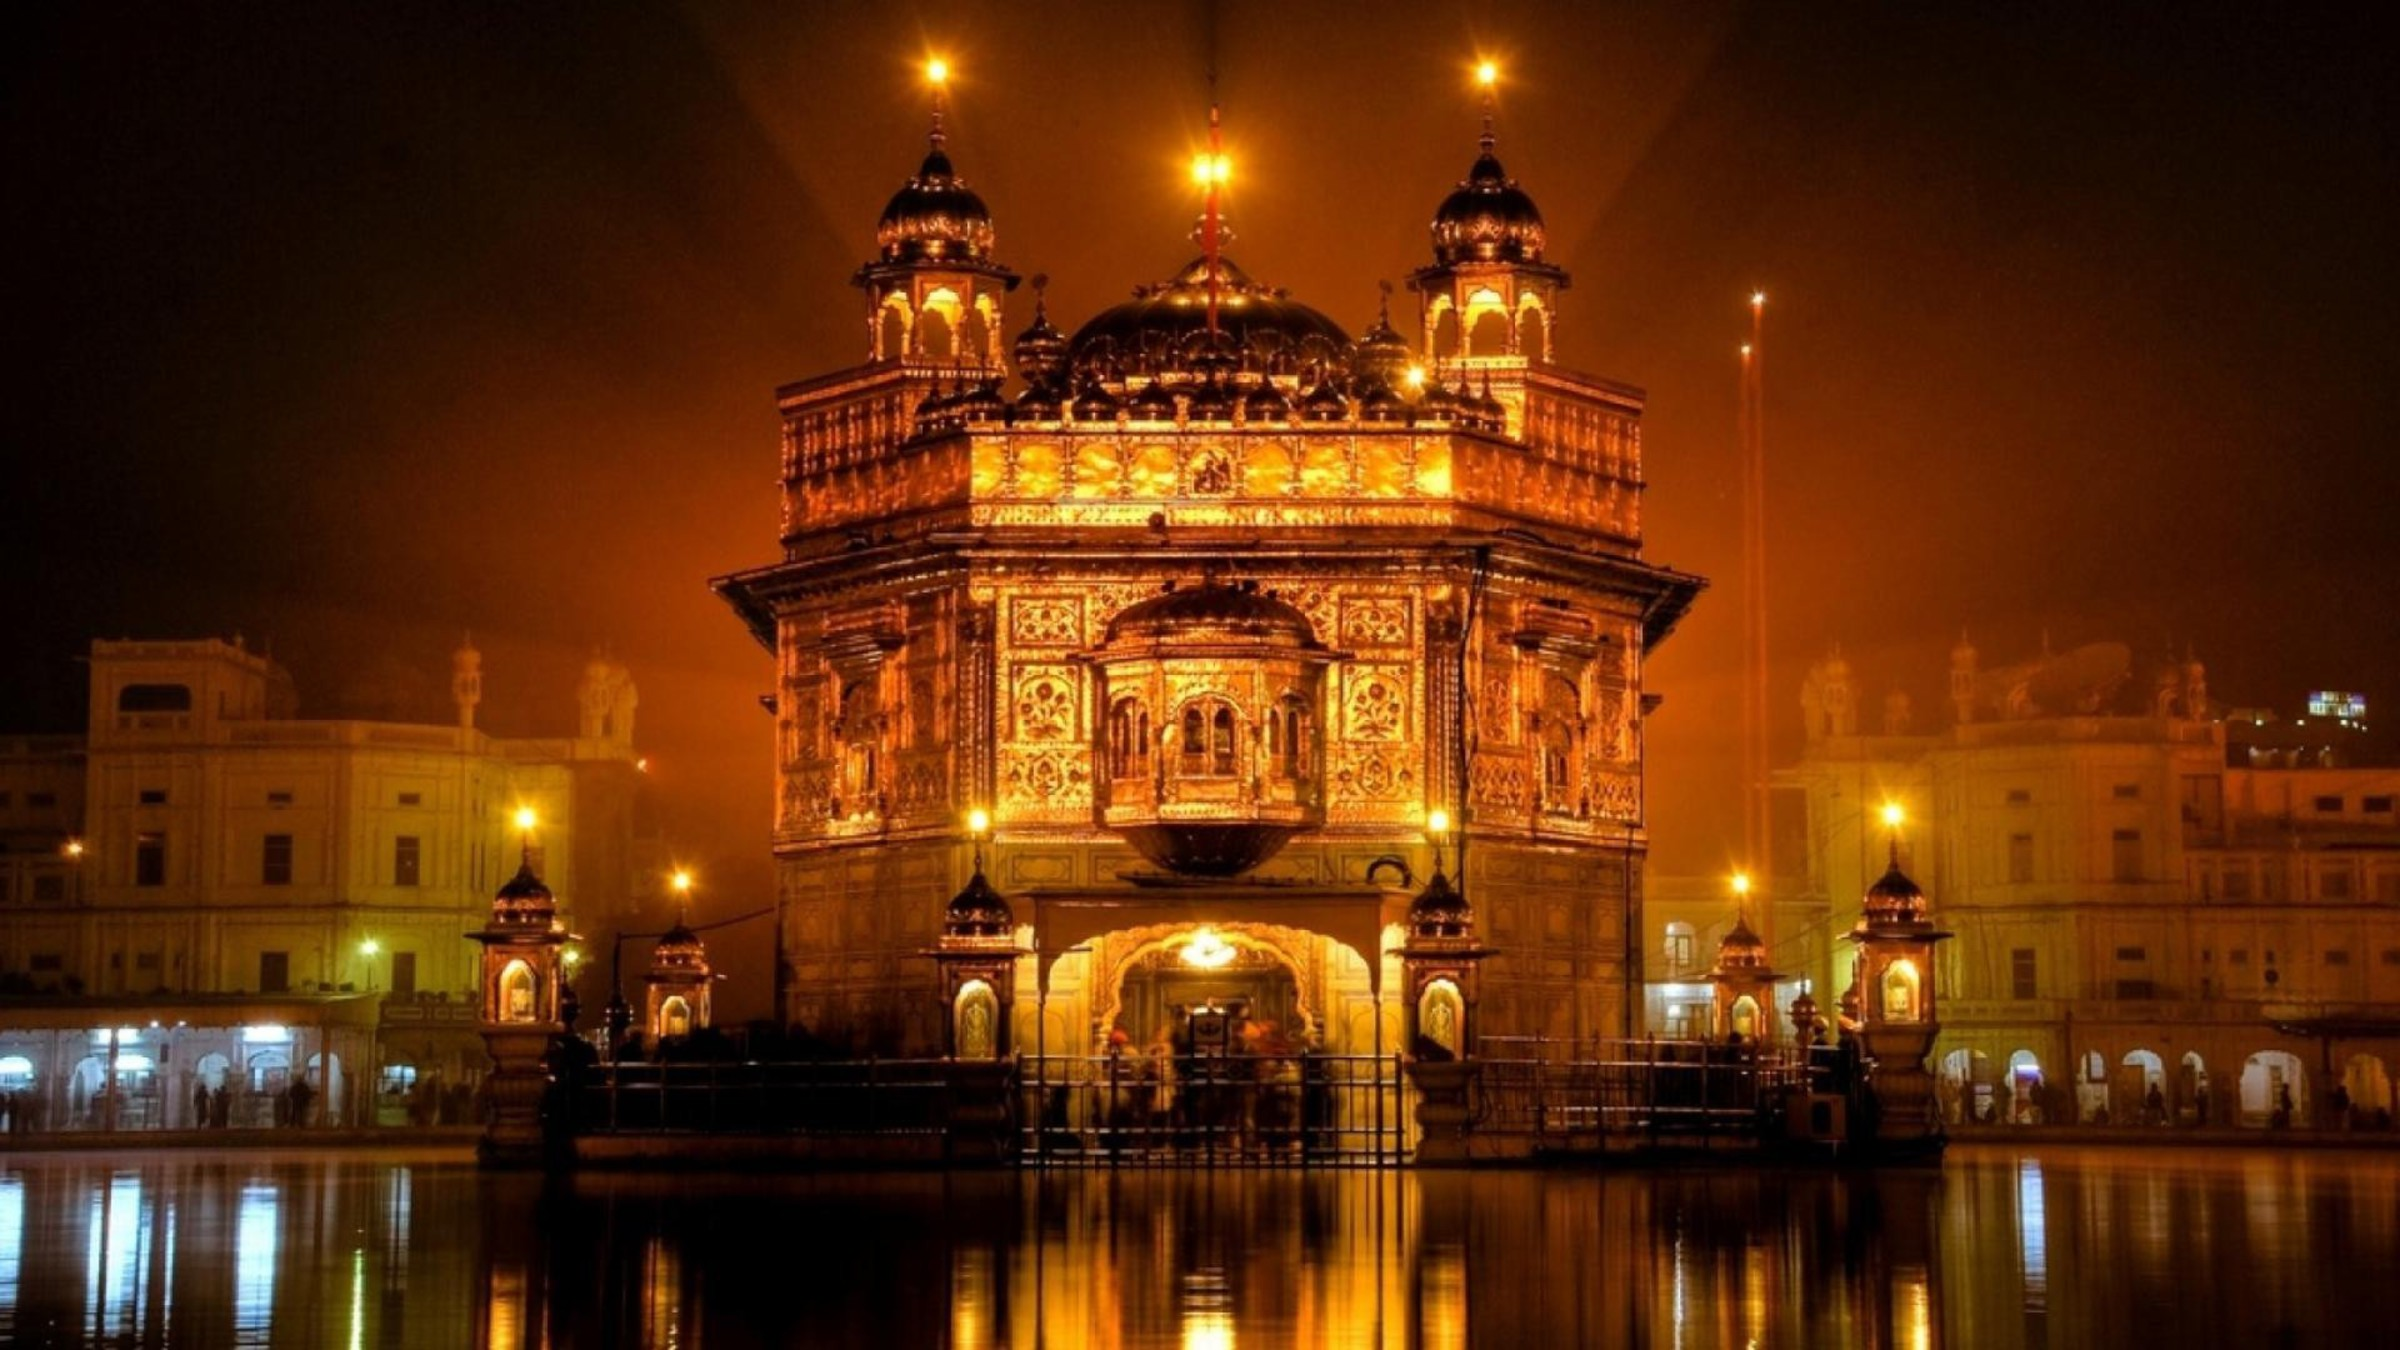 The golden temple at night in amritsar india wallpaper for Golden night